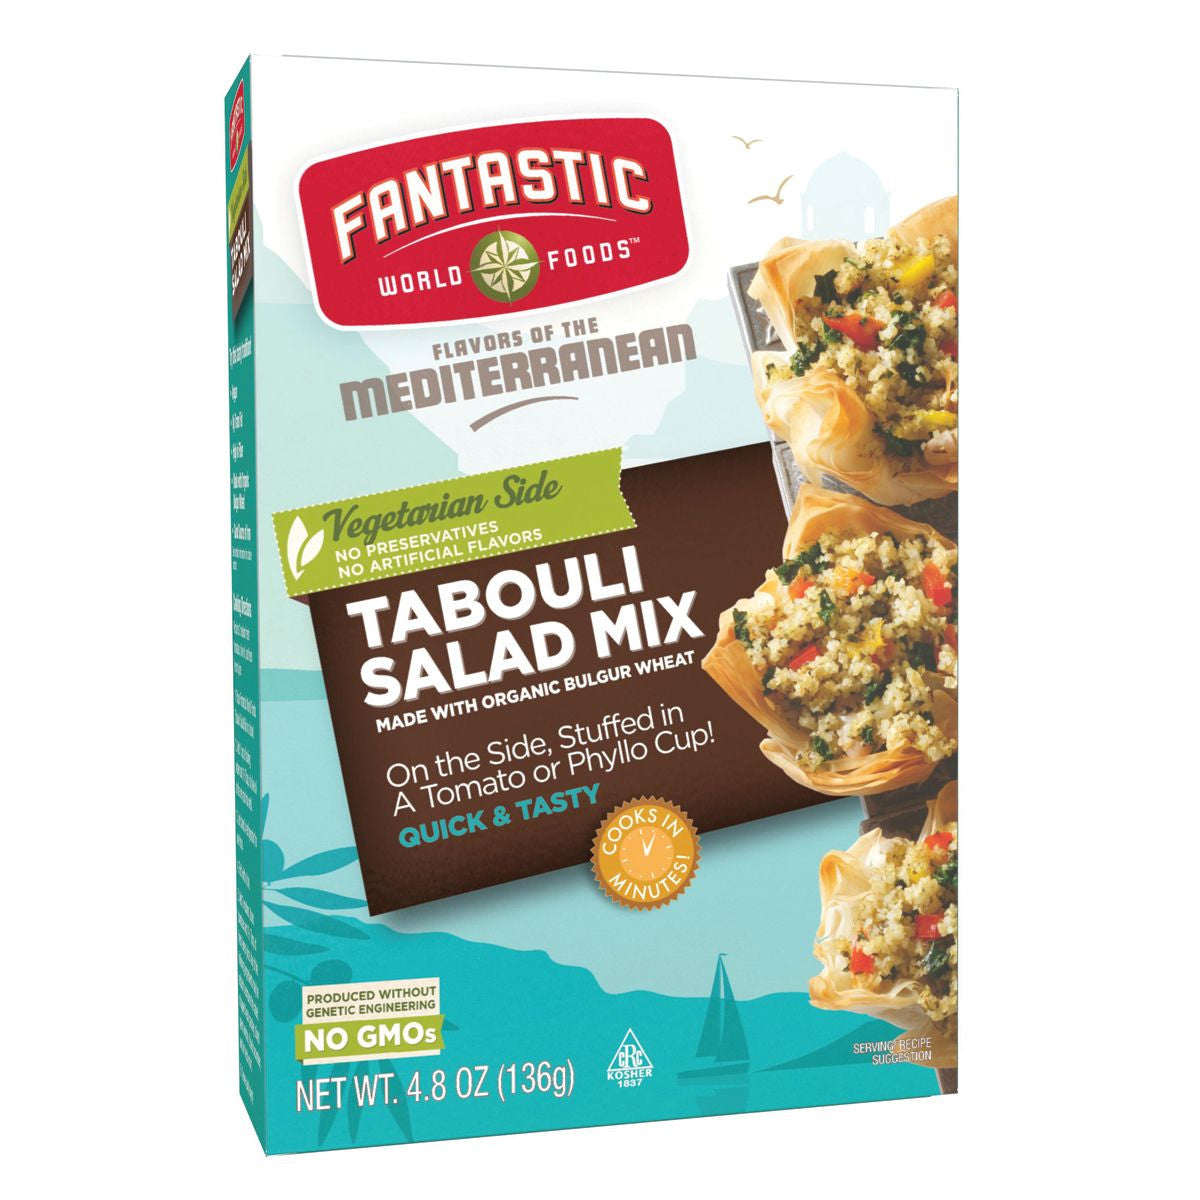 Fantastic World Foods Tabouli Salad, 4.8 Oz (Pack of 6)